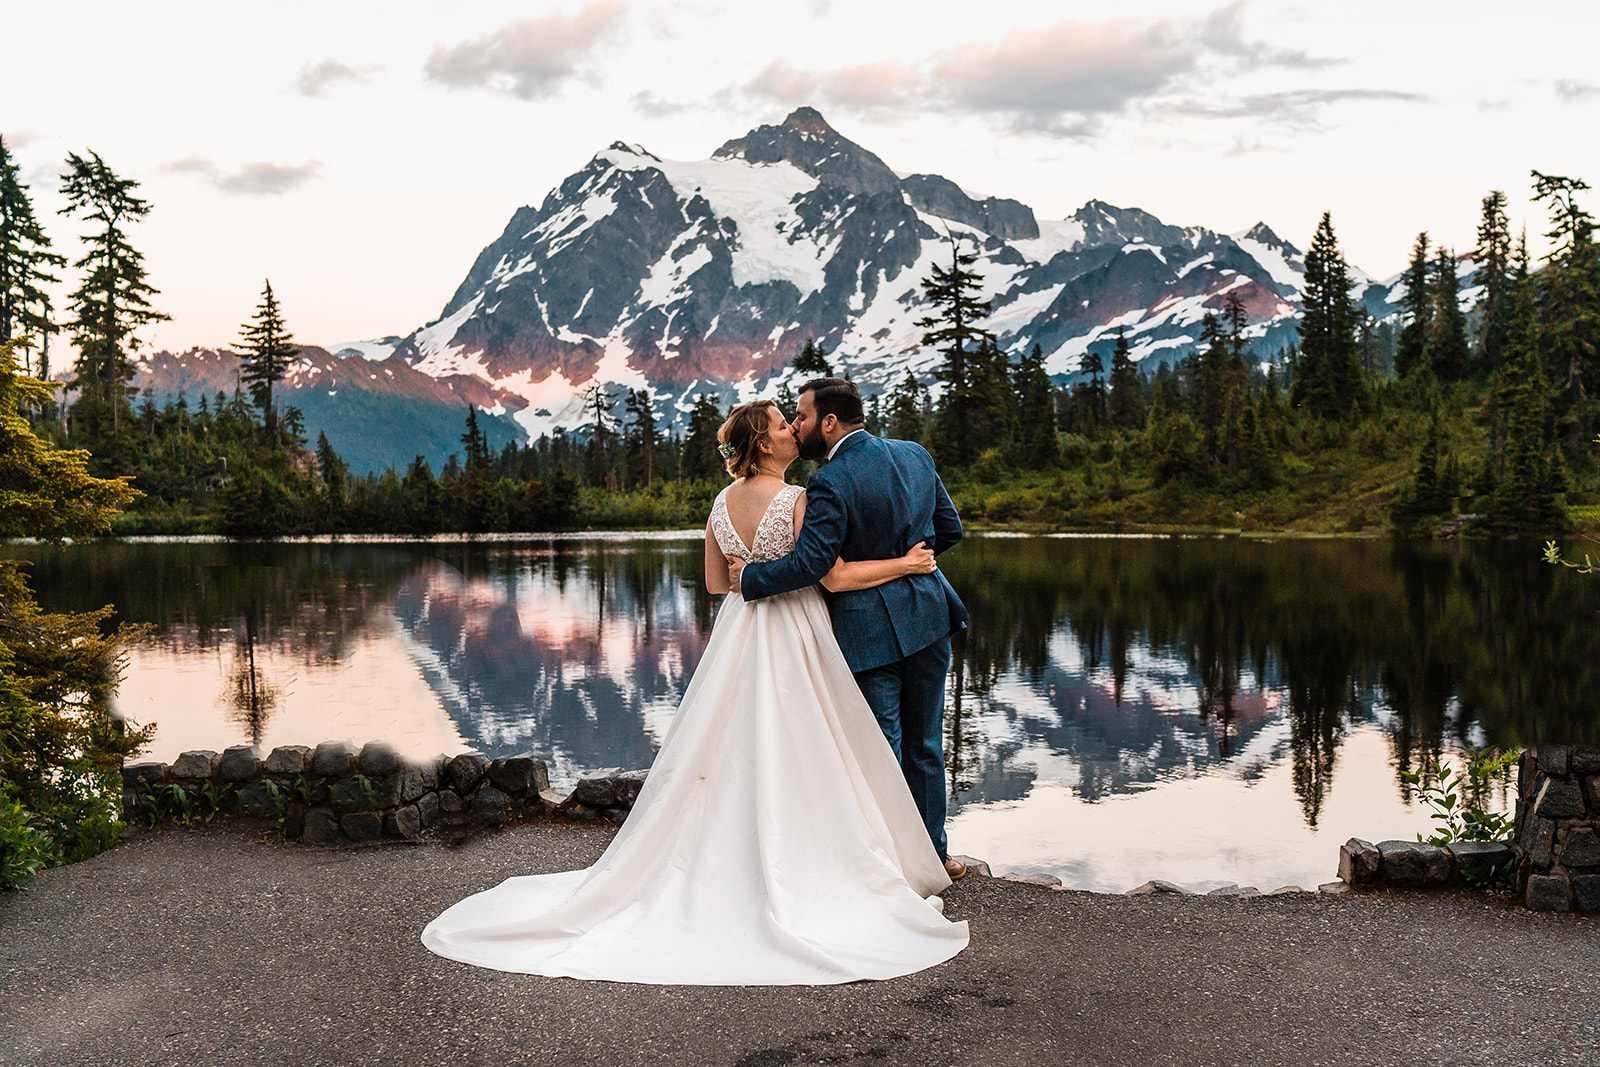 Couple hugging in front of mountain lake at sunset elopement